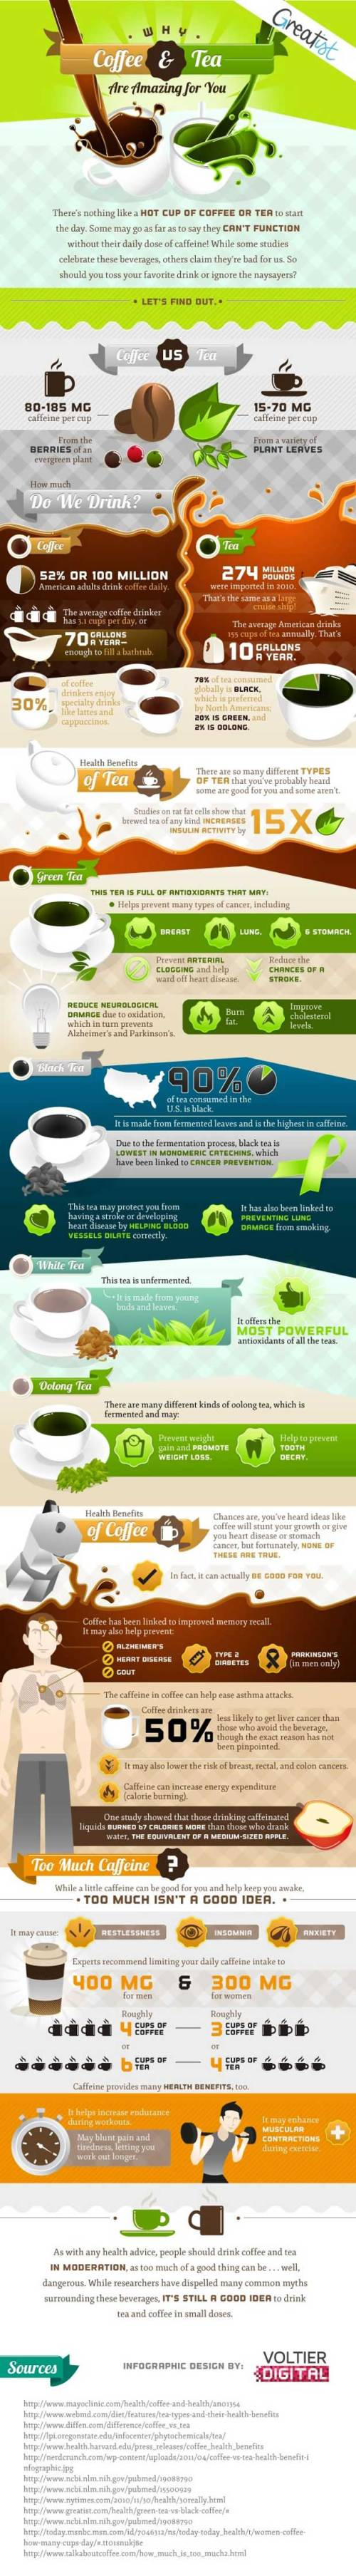 coffee-tea-benefits